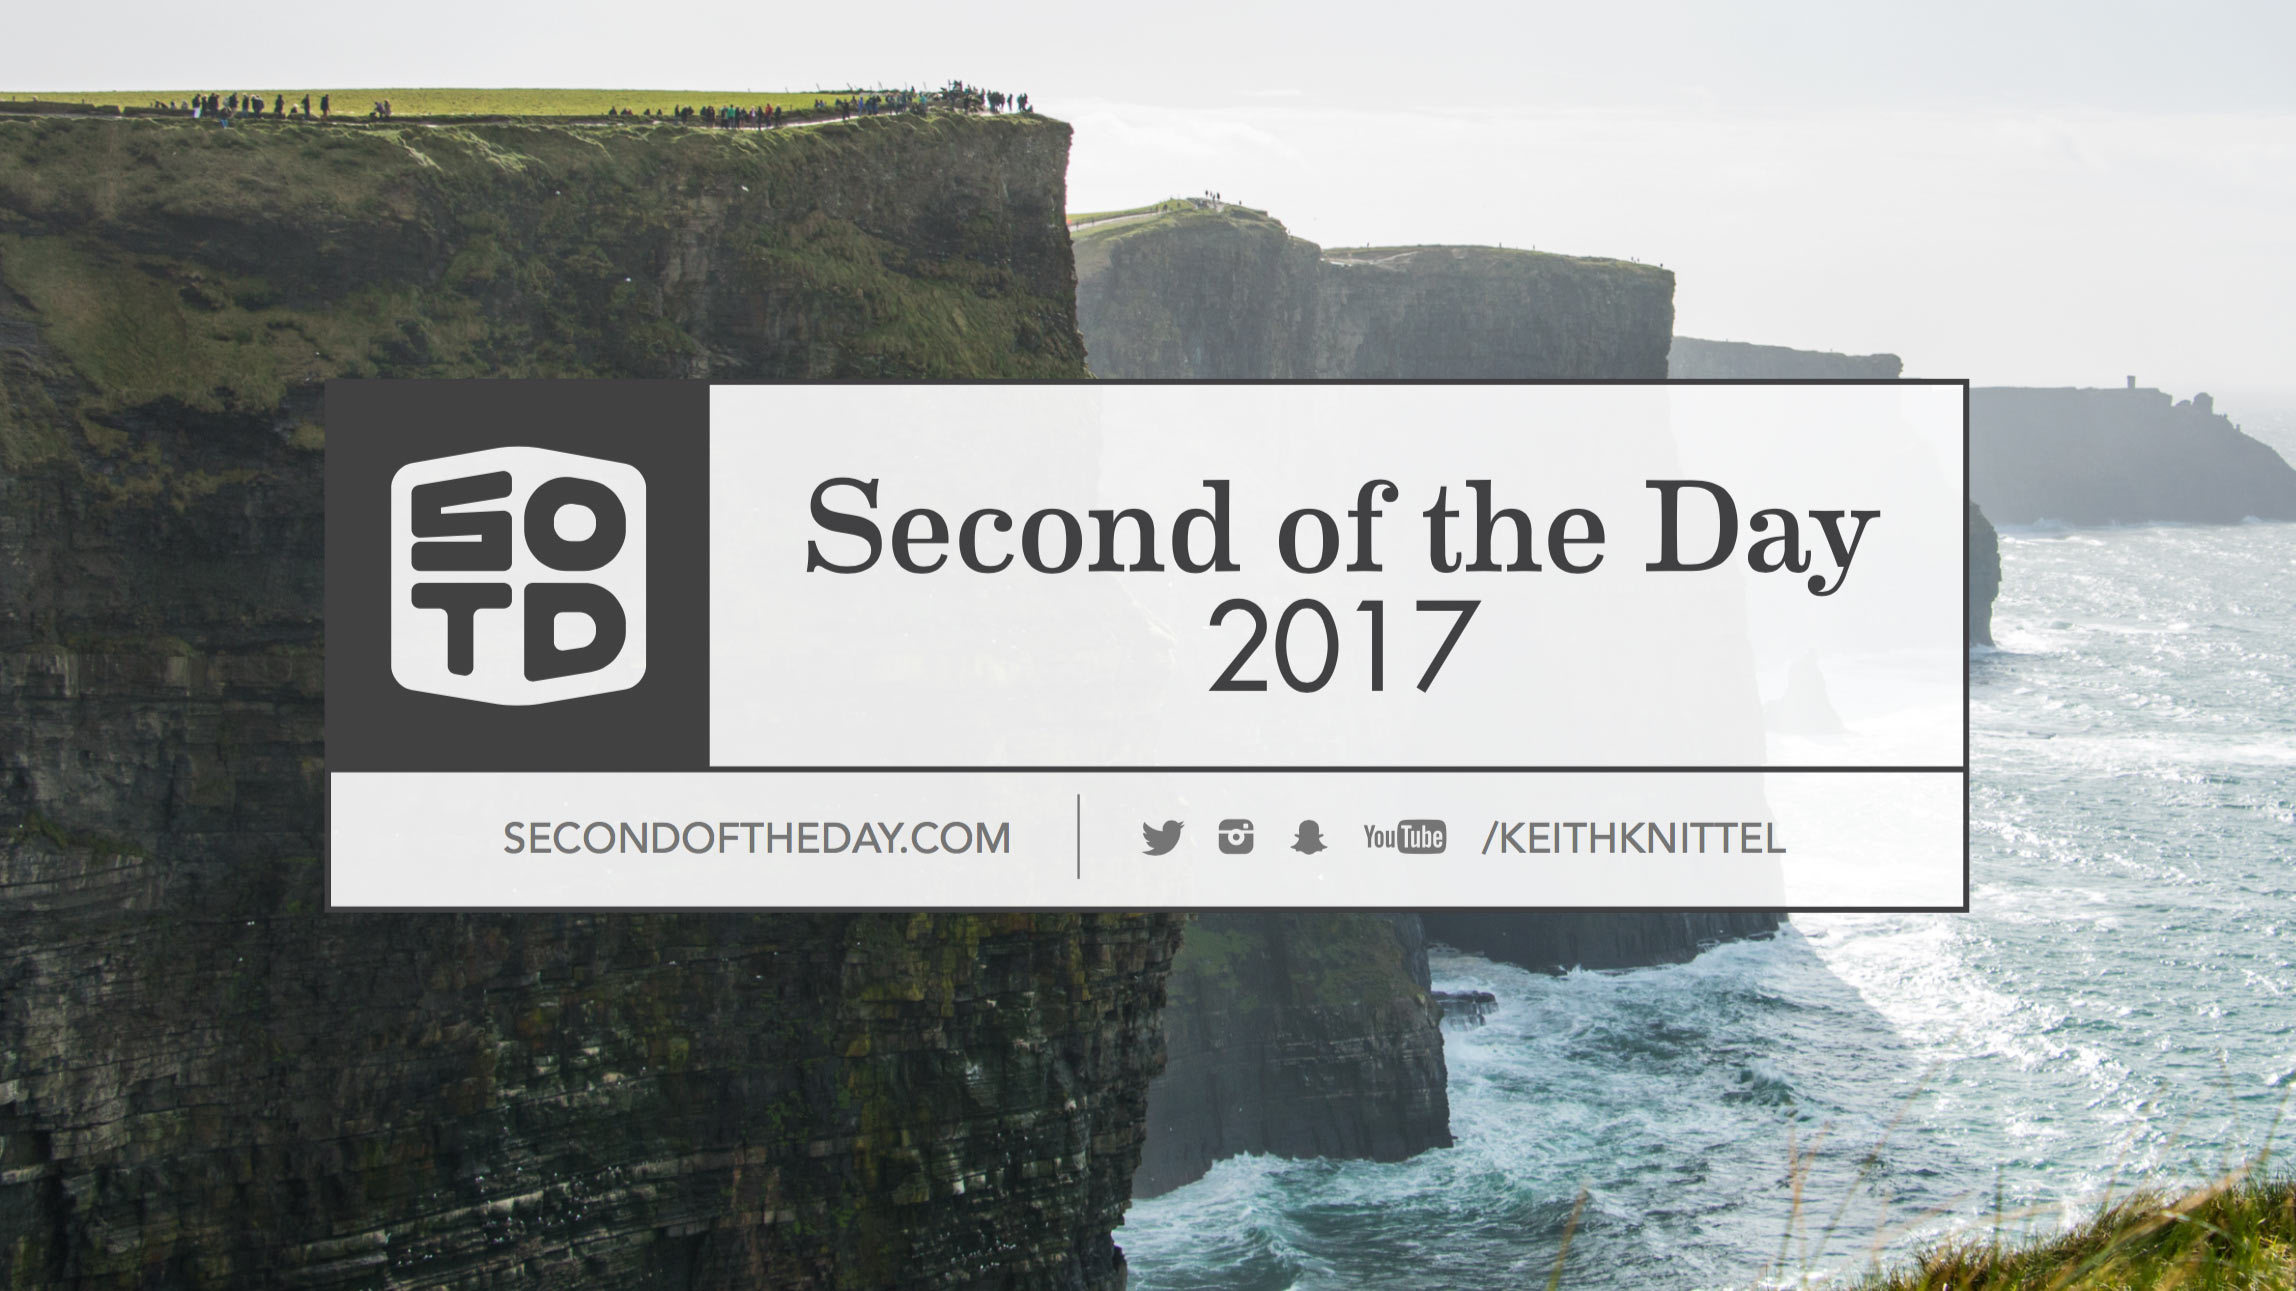 Second of the Day 2017 video posted and website launched